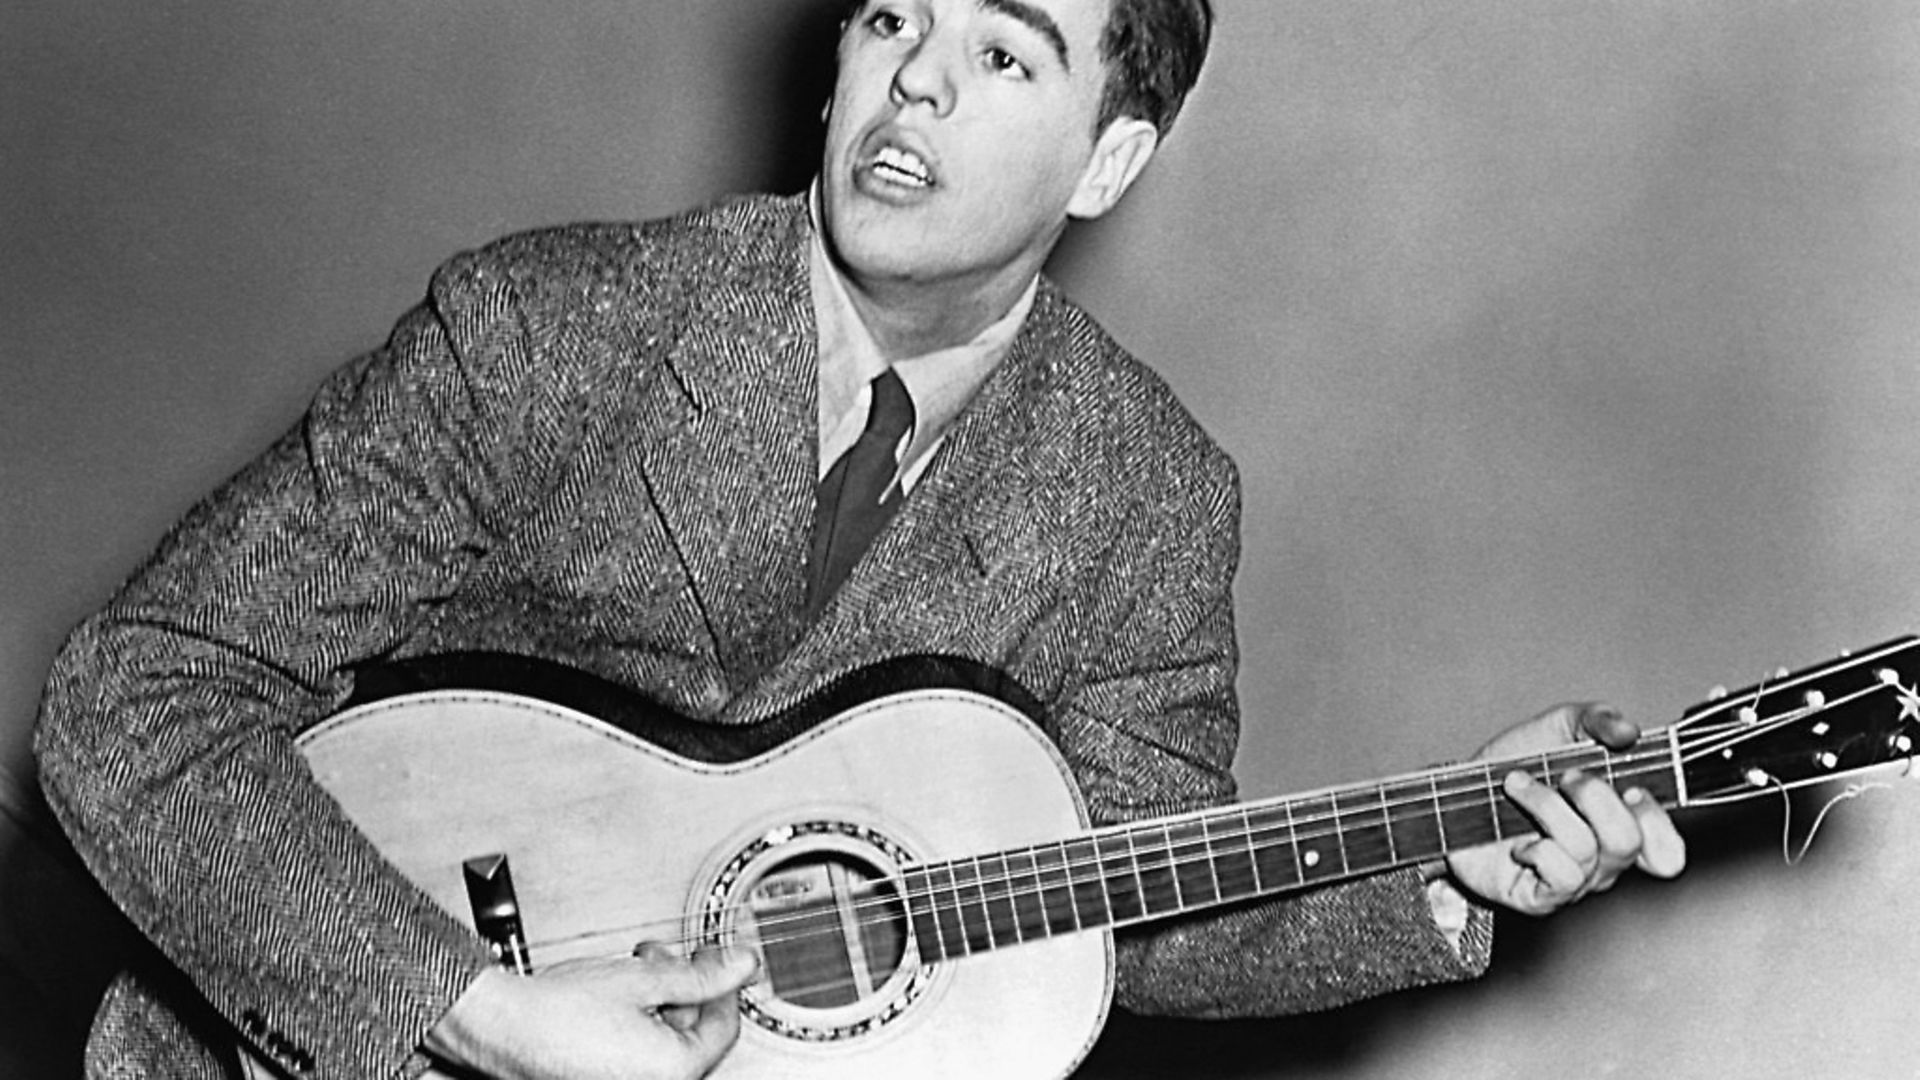 """Singer/songwriter, Alan Lomax joined his father, John Lomax in 1933 and they colloborated in compiling """"American Ballads and Folk Songs"""" and """"Our Singing Country."""" (Photo by © CORBIS/Corbis via Getty Images) - Credit: Corbis via Getty Images"""